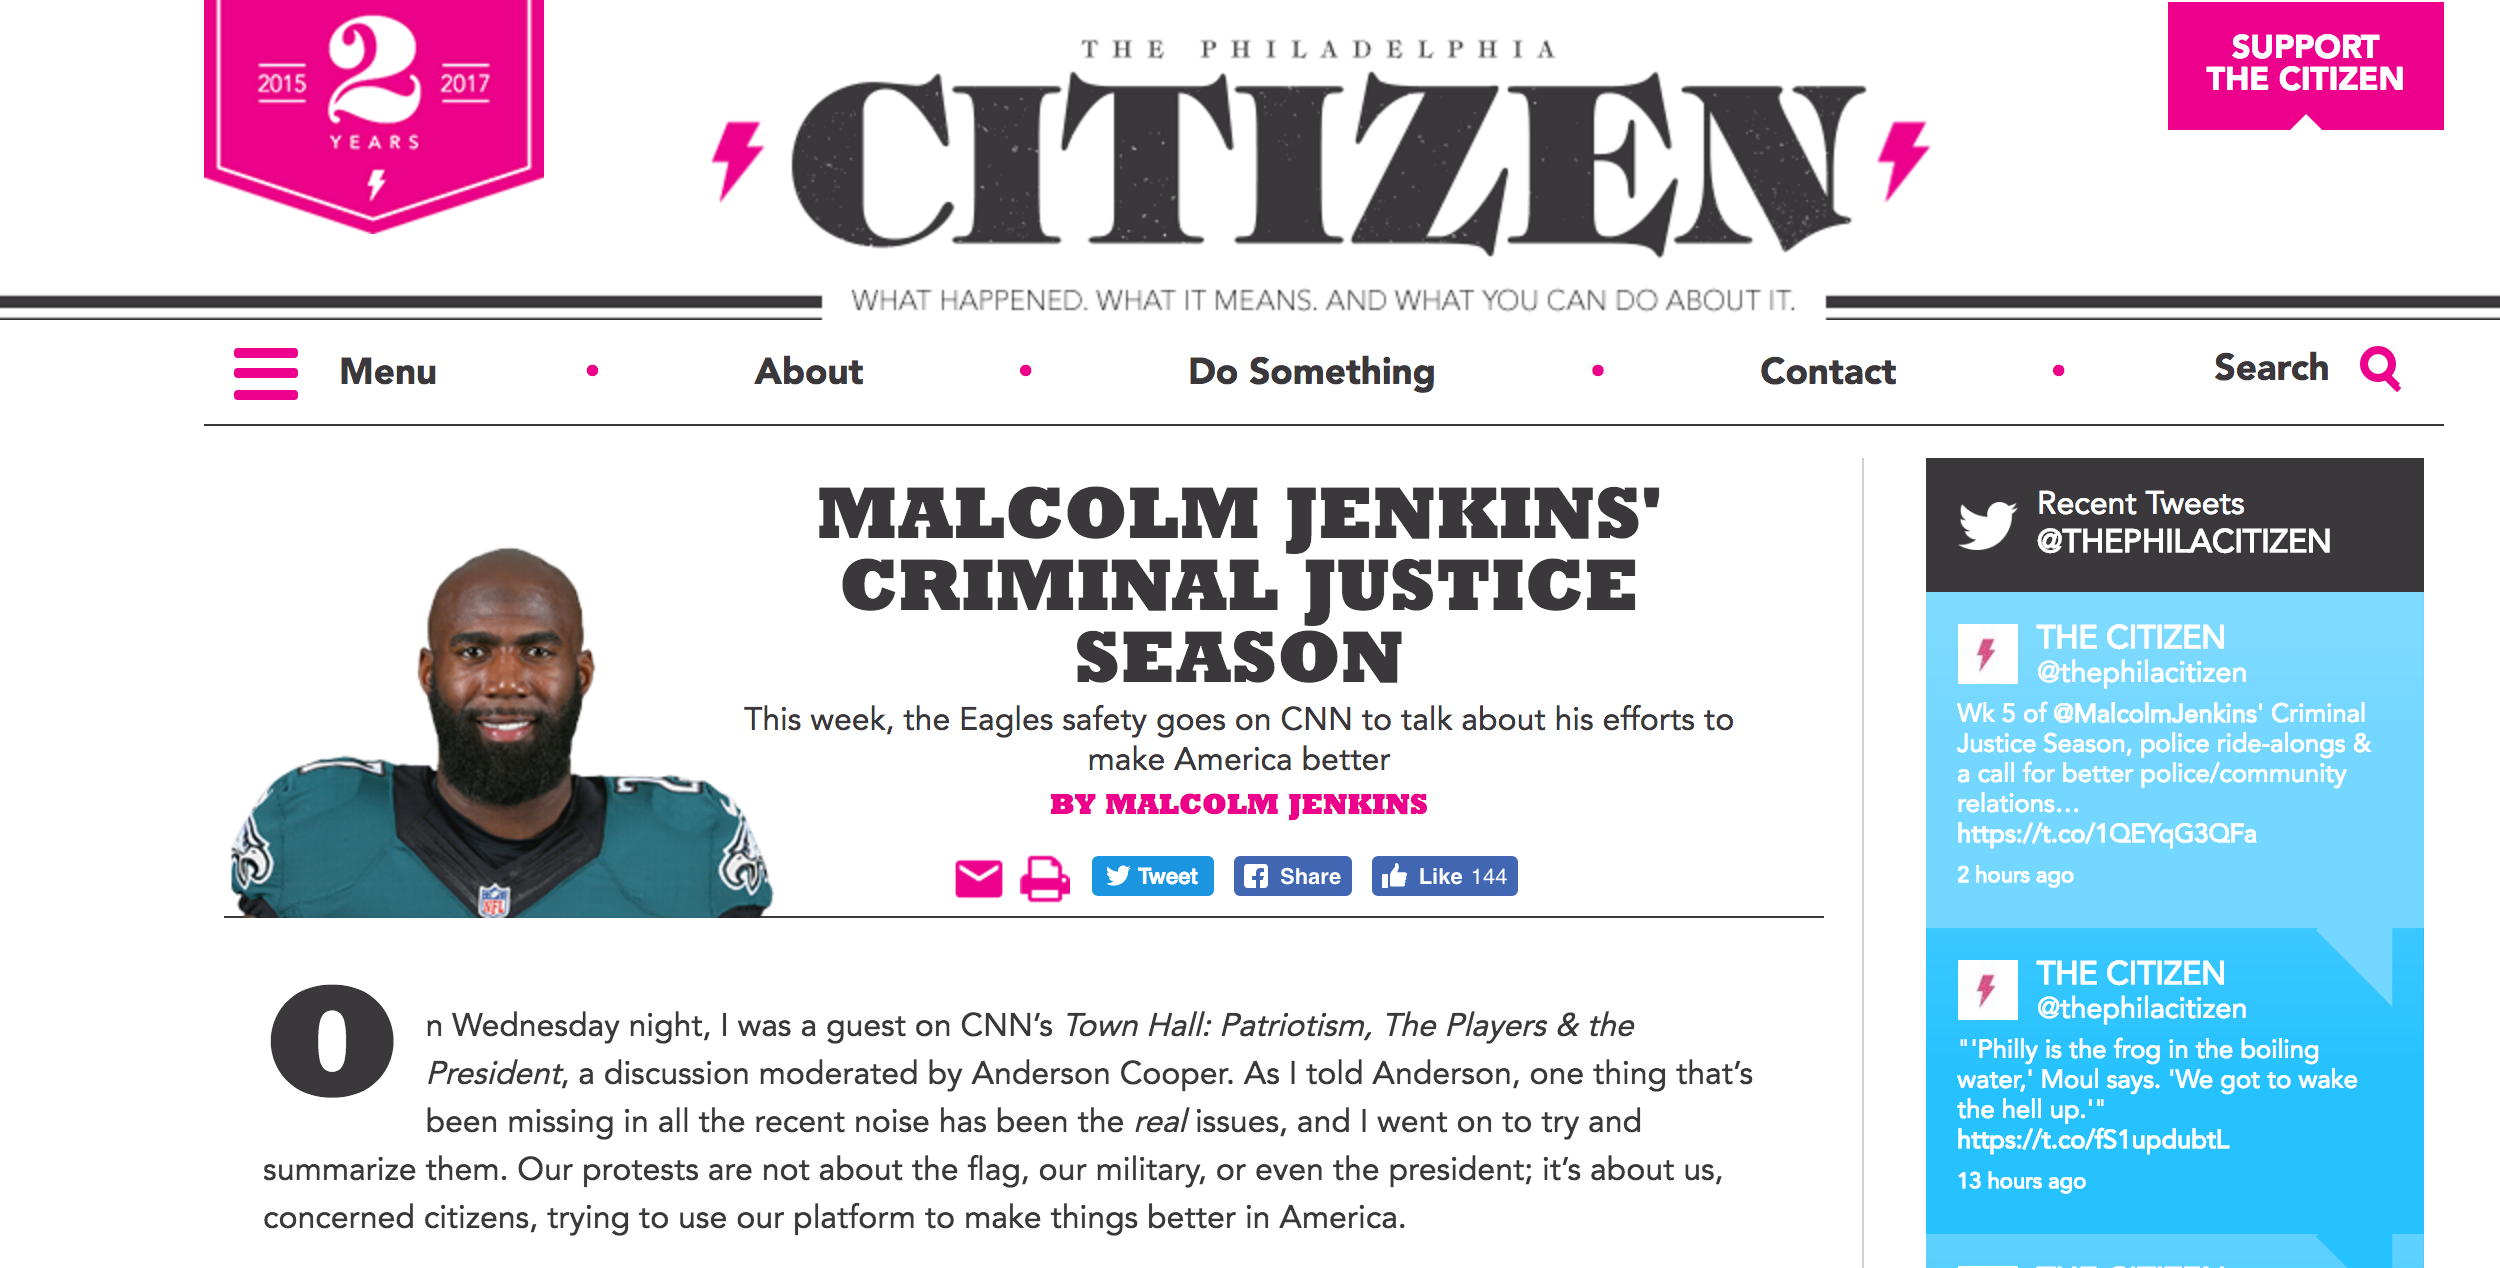 Malcolm Jenkins Criminal Justice Season - Our protests are not about the flag, our military, or even the president; it's about us, concerned citizens, trying to use our platform to make things better in America. Check out my segment...